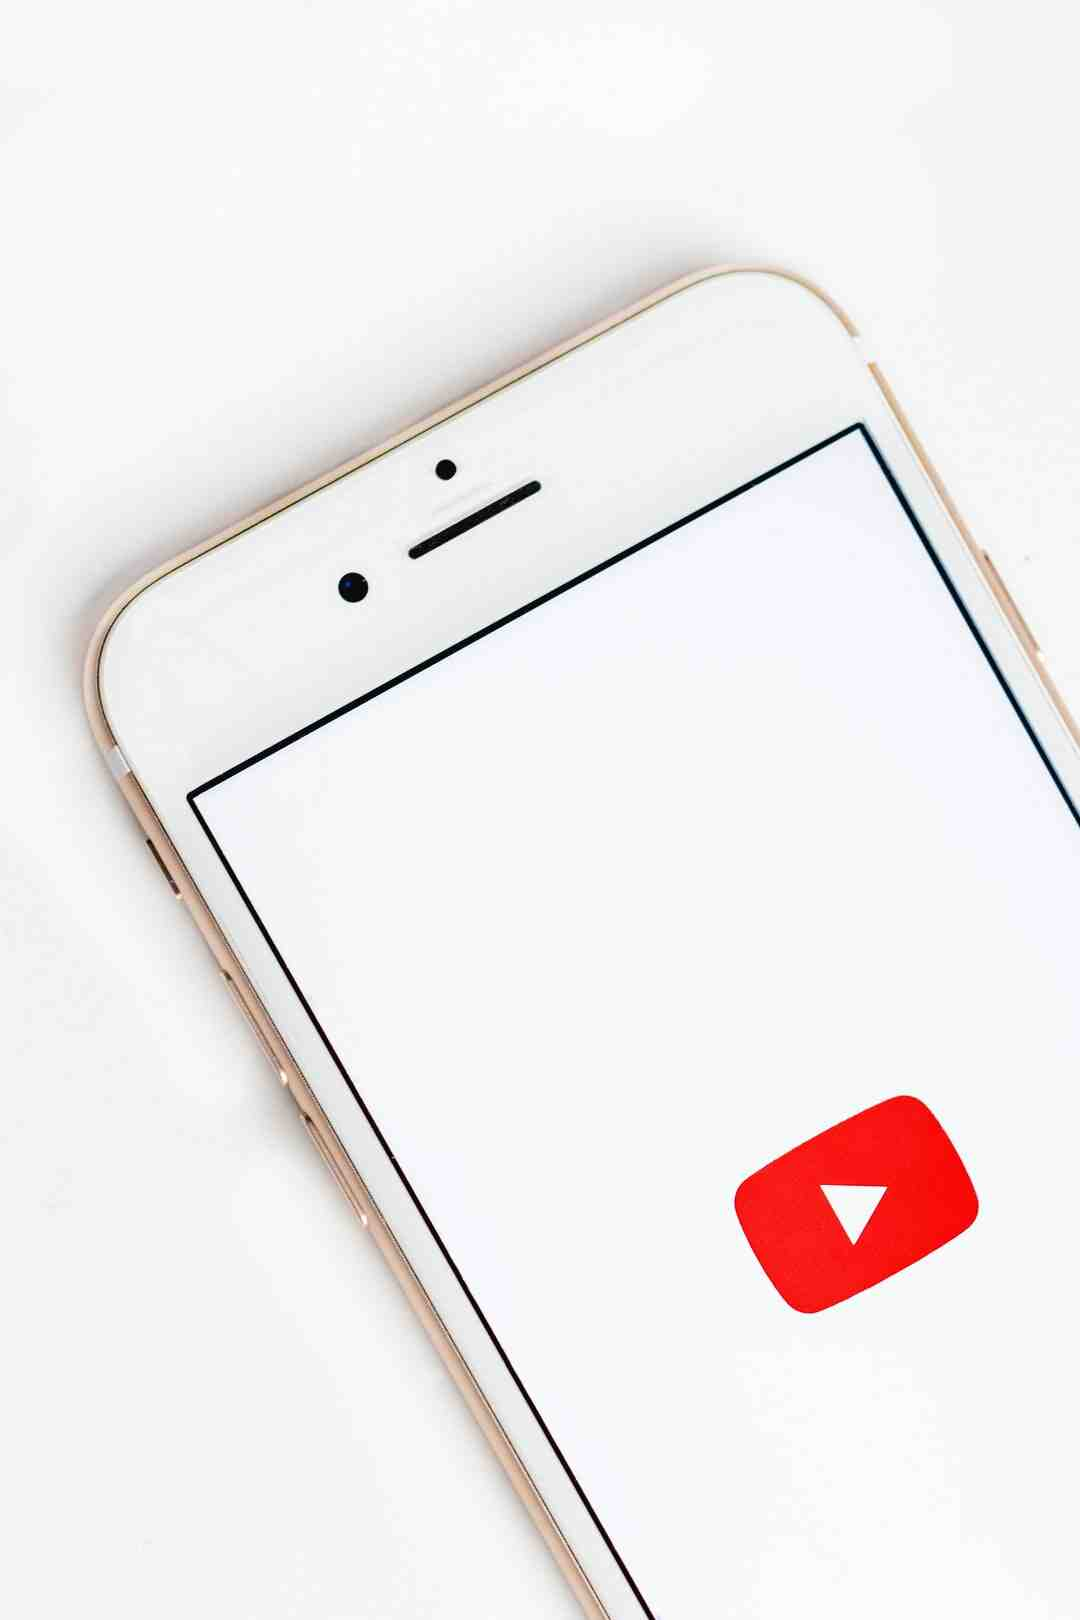 Can we do live stream in mobile?